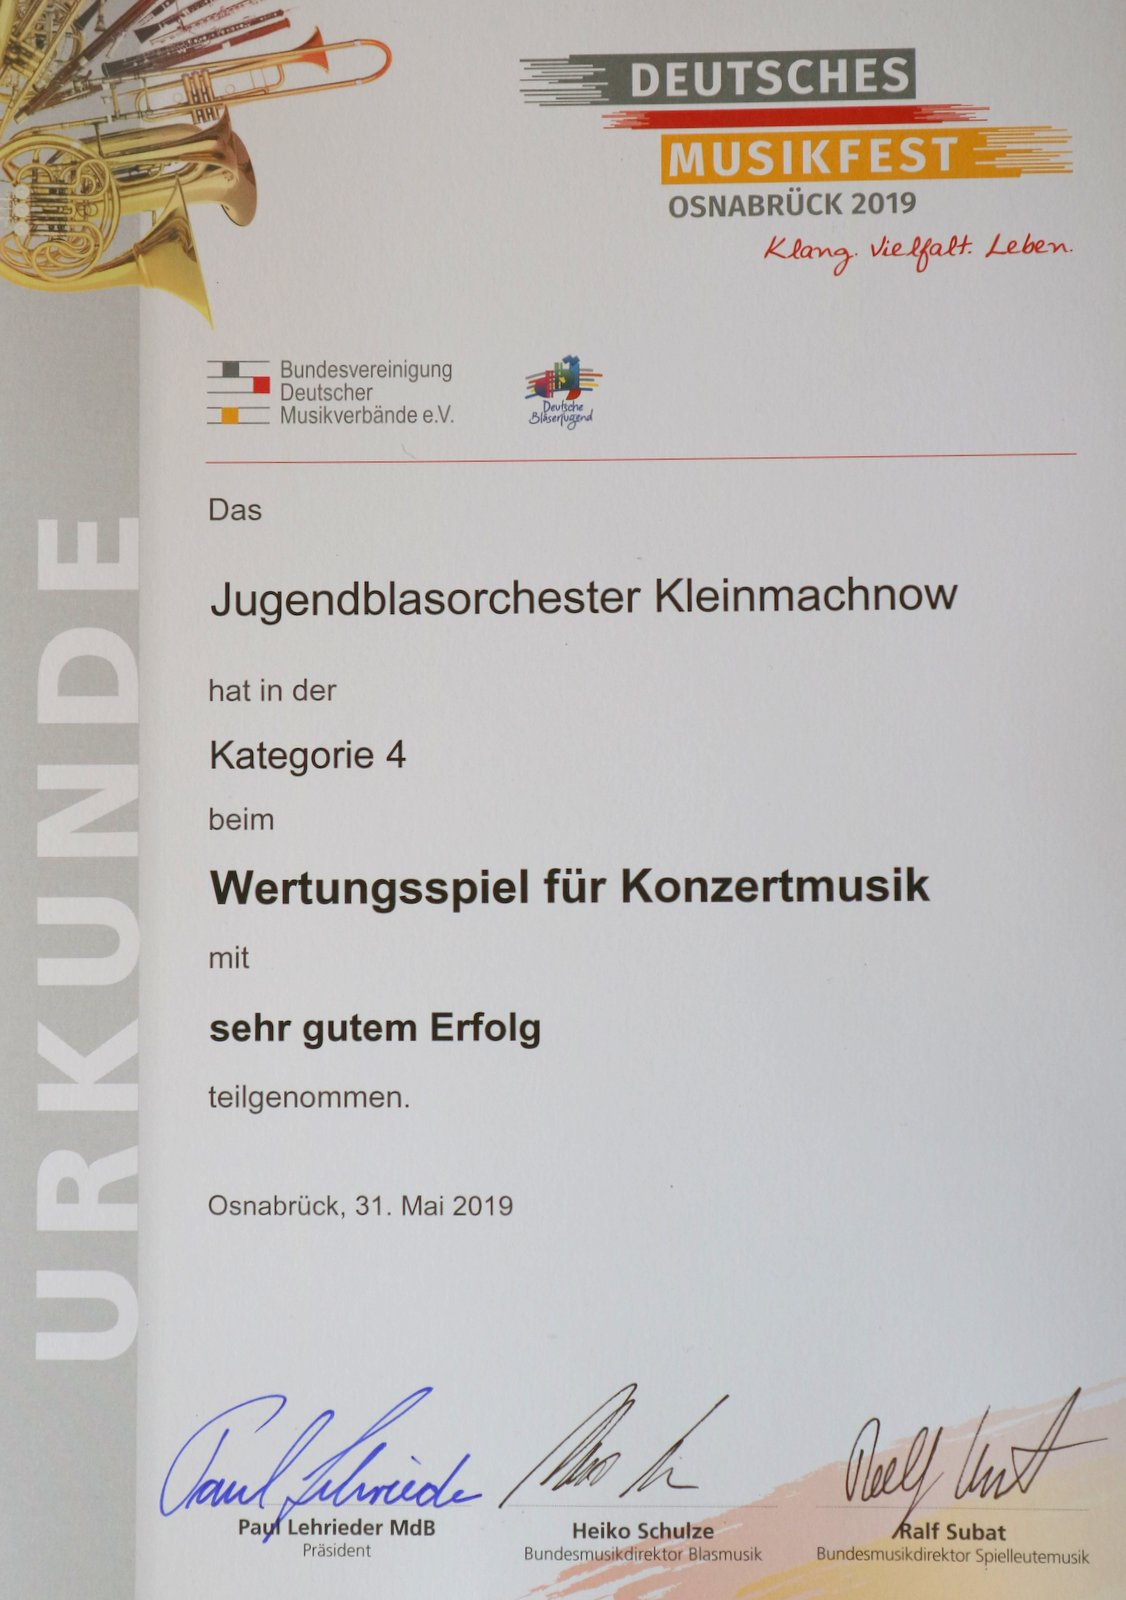 Jugendblasorchester Kleinmachnow - Events - Deutsches